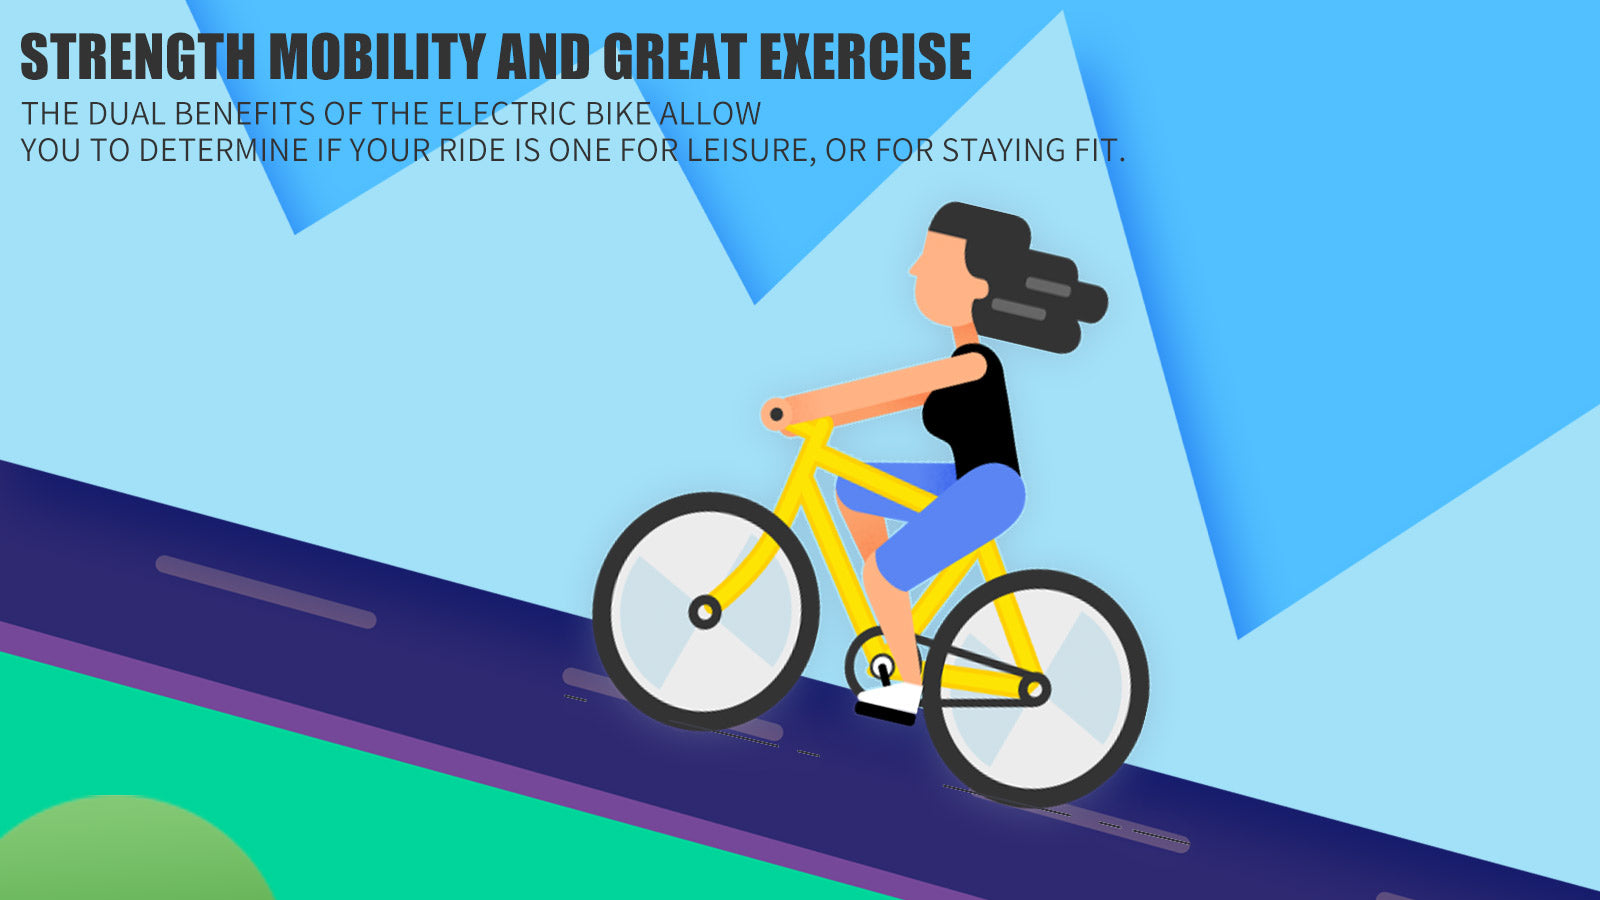 electric bike strength mobility and great exercise